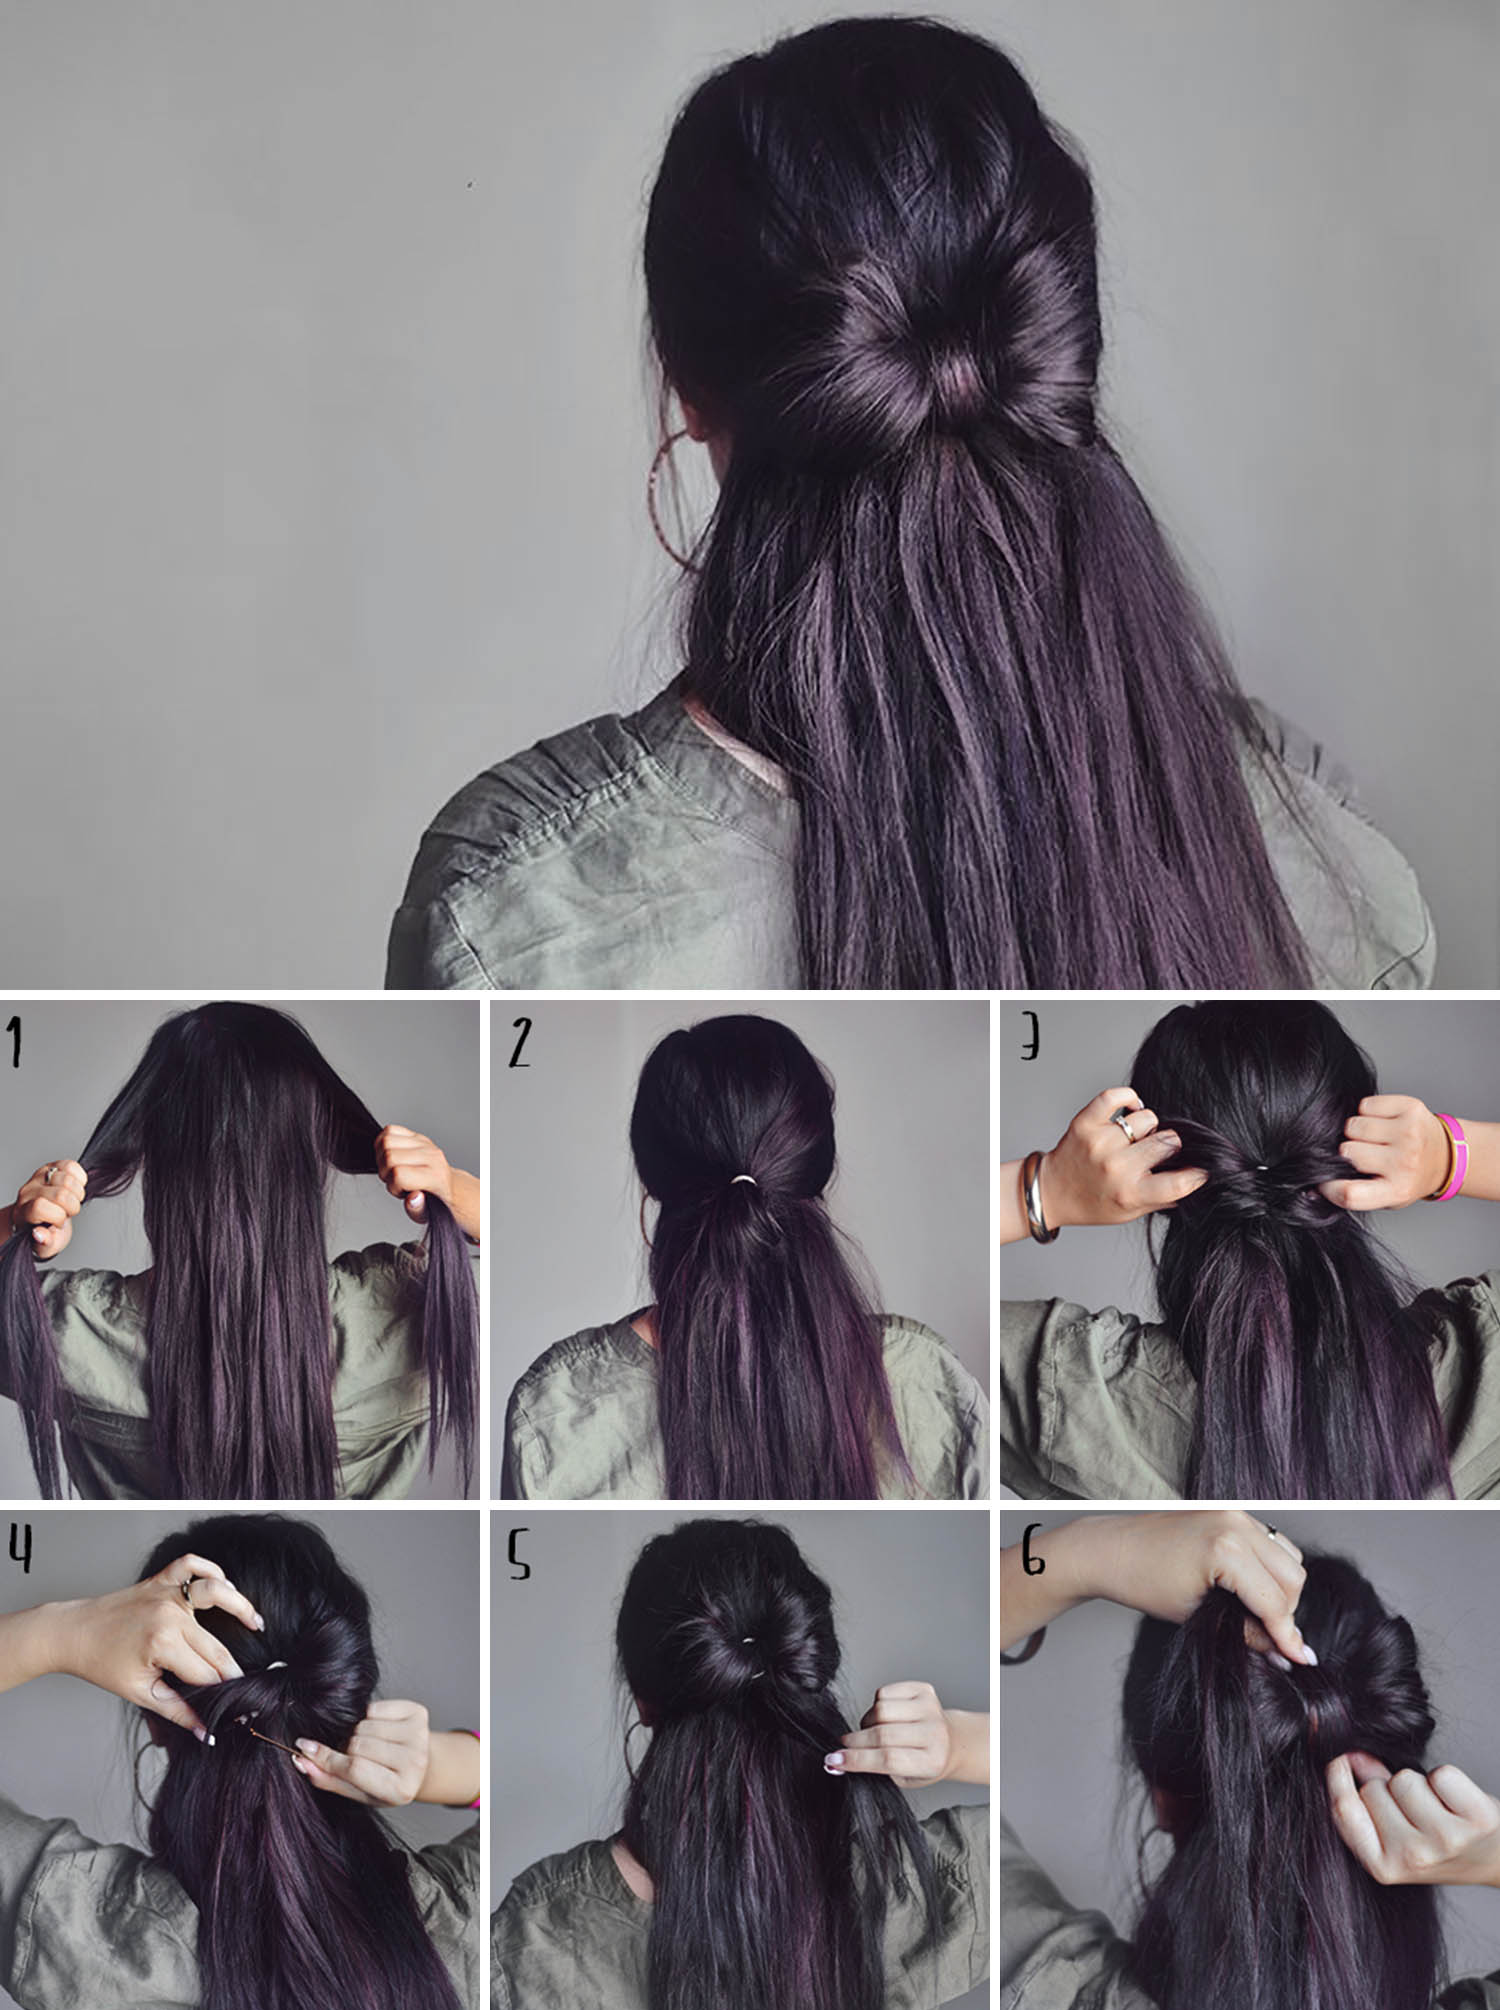 ADARAS Quick & Easy Hairstyles: Half-up Hair Bow Hairstyle